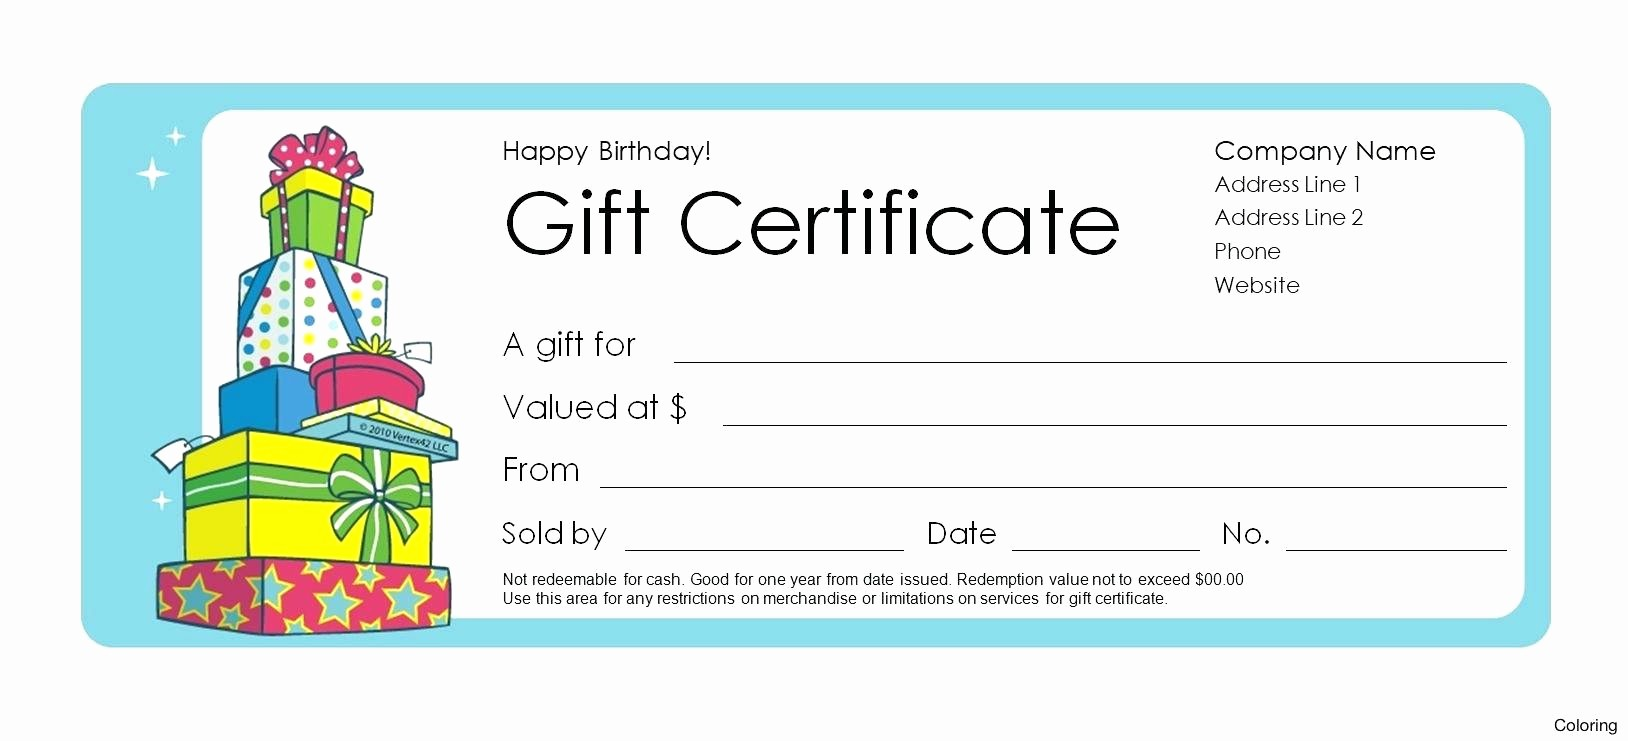 Gift Certificate Templates Free Printable Unique How to Numbered Gift Certificates In Publisher Gift Ftempo